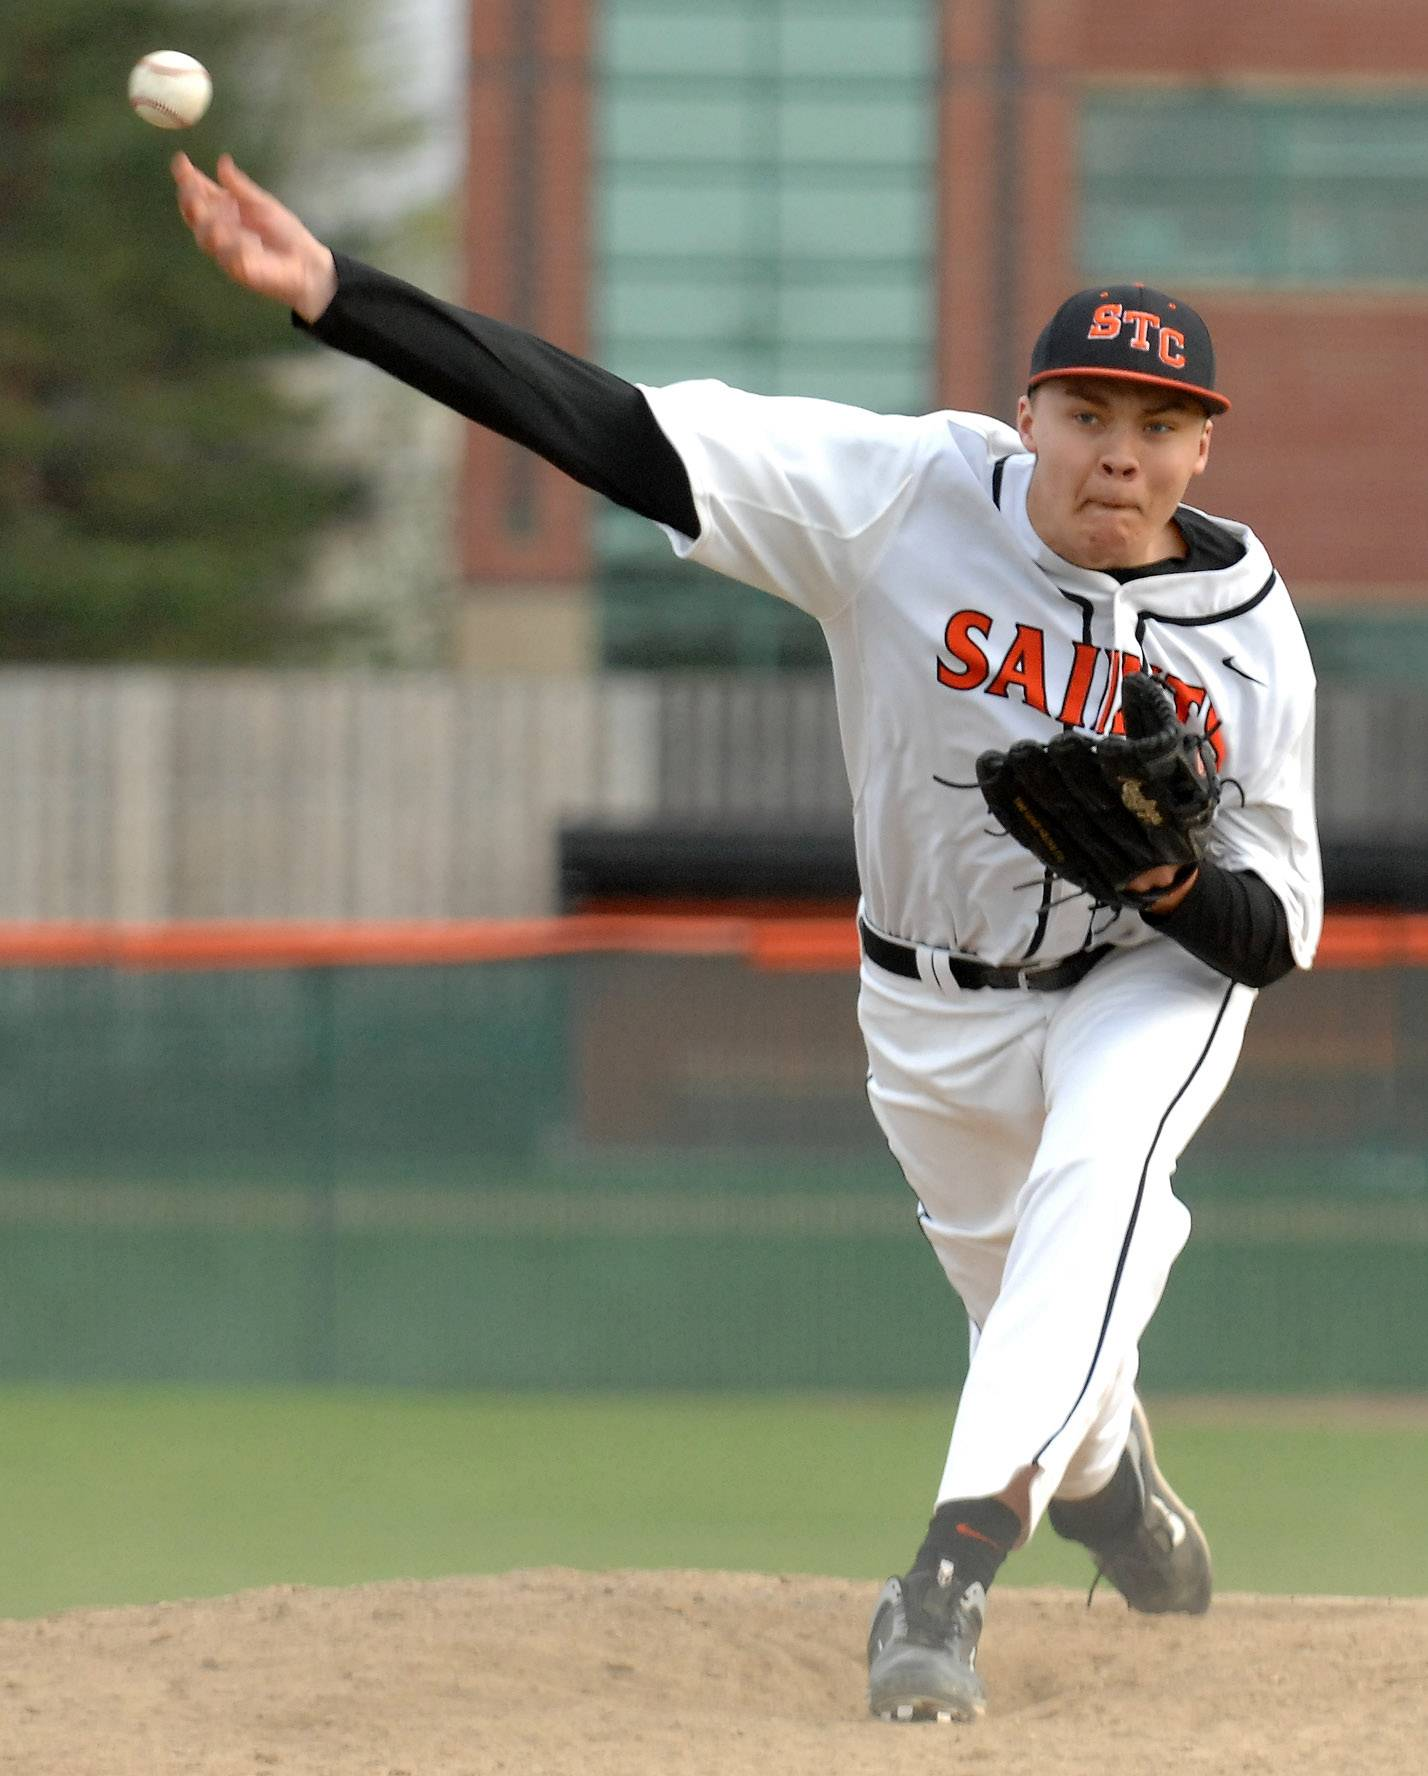 St. Charles East's Michael Vyzral (14) makes a pitch in relief that gets the Saints out of a bases loaded jam against St. Charles North during Tuesday's game at St. Charles East.